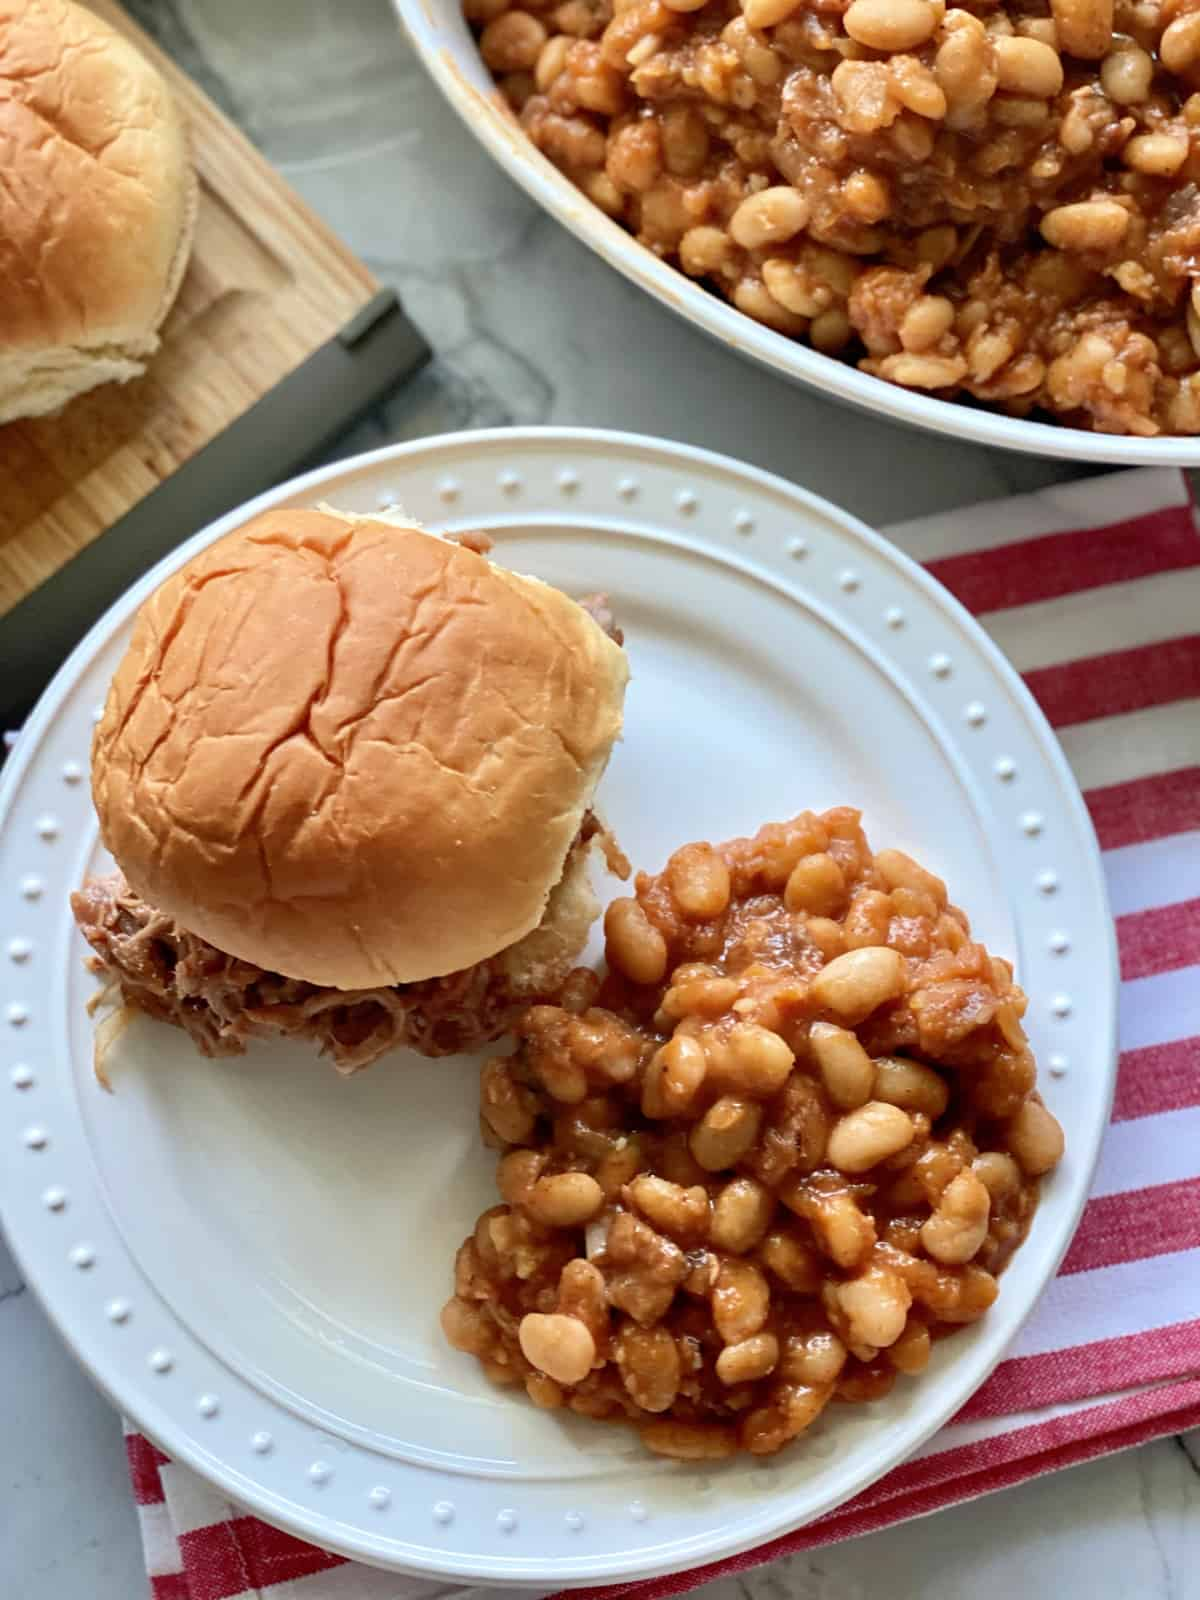 Top view of a white plate filled with baked beans and a pulled pork sandwich.